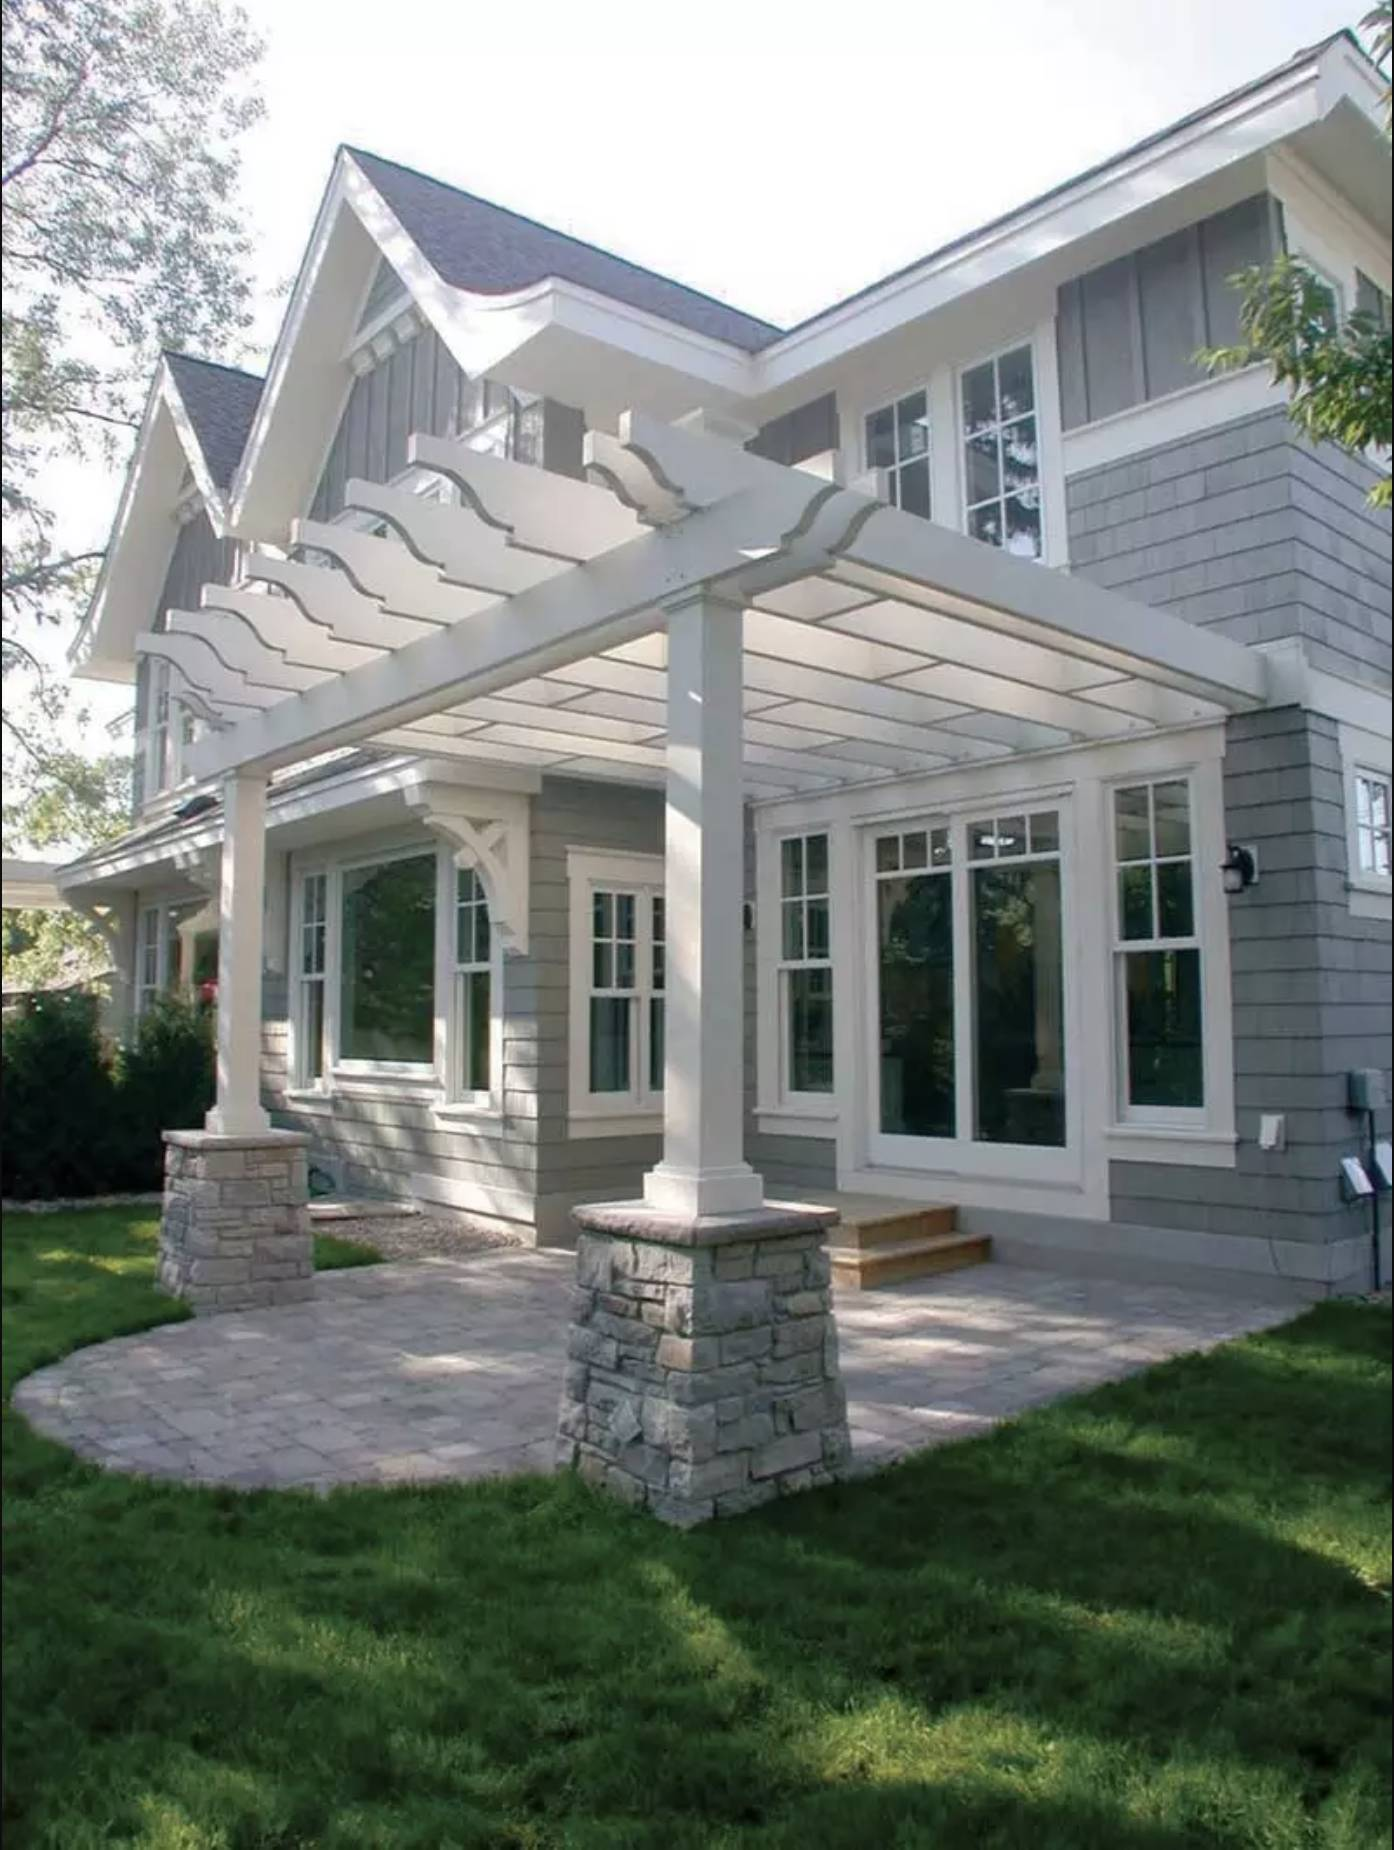 White Pergola with Grey Stone Accents